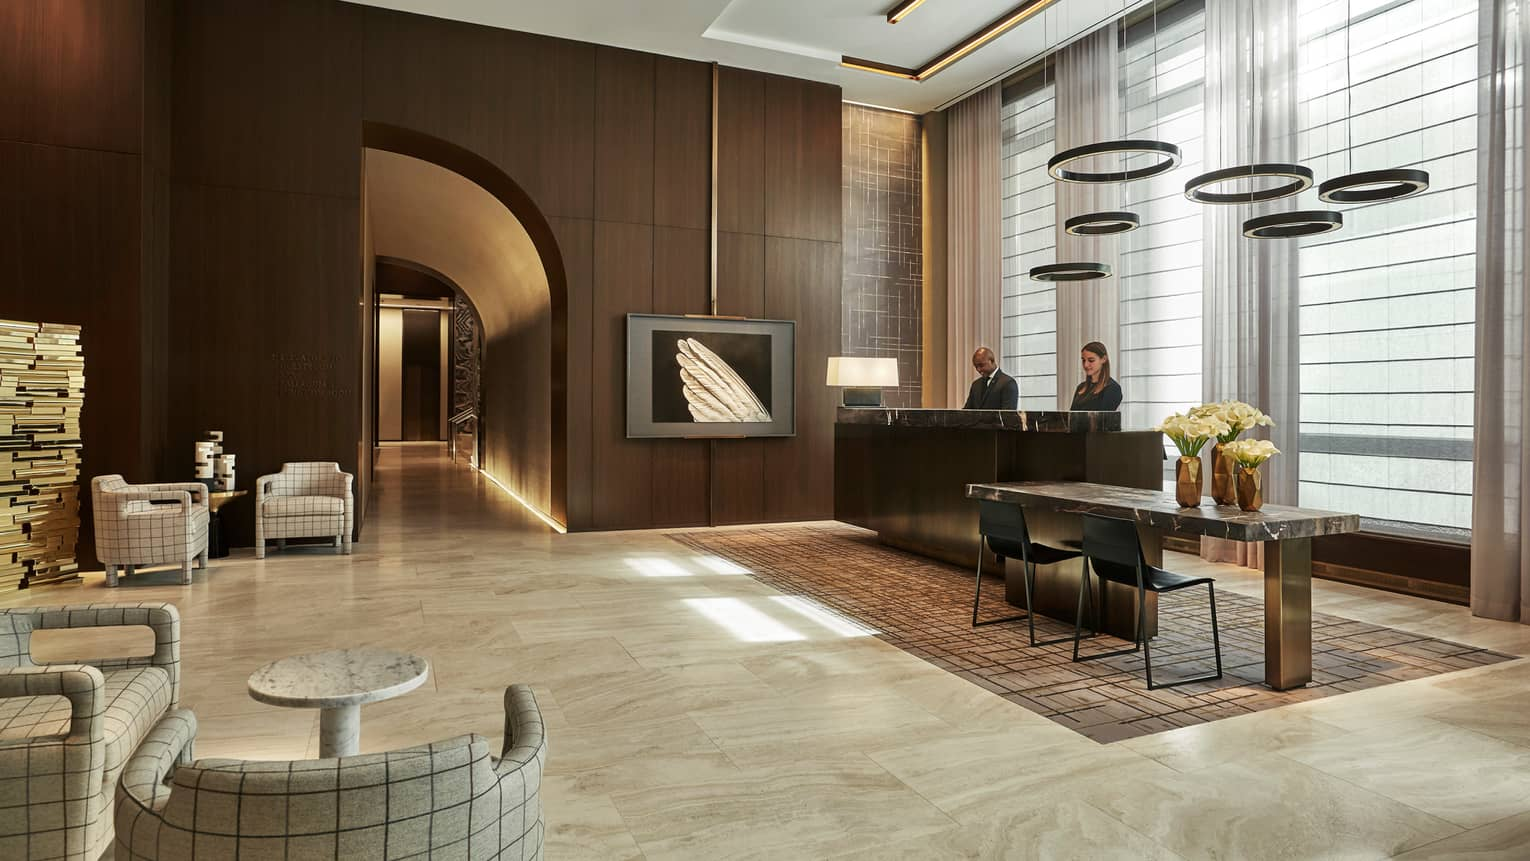 Concierge staff at desk in dark wood lobby under hanging discs by screen with image of wing